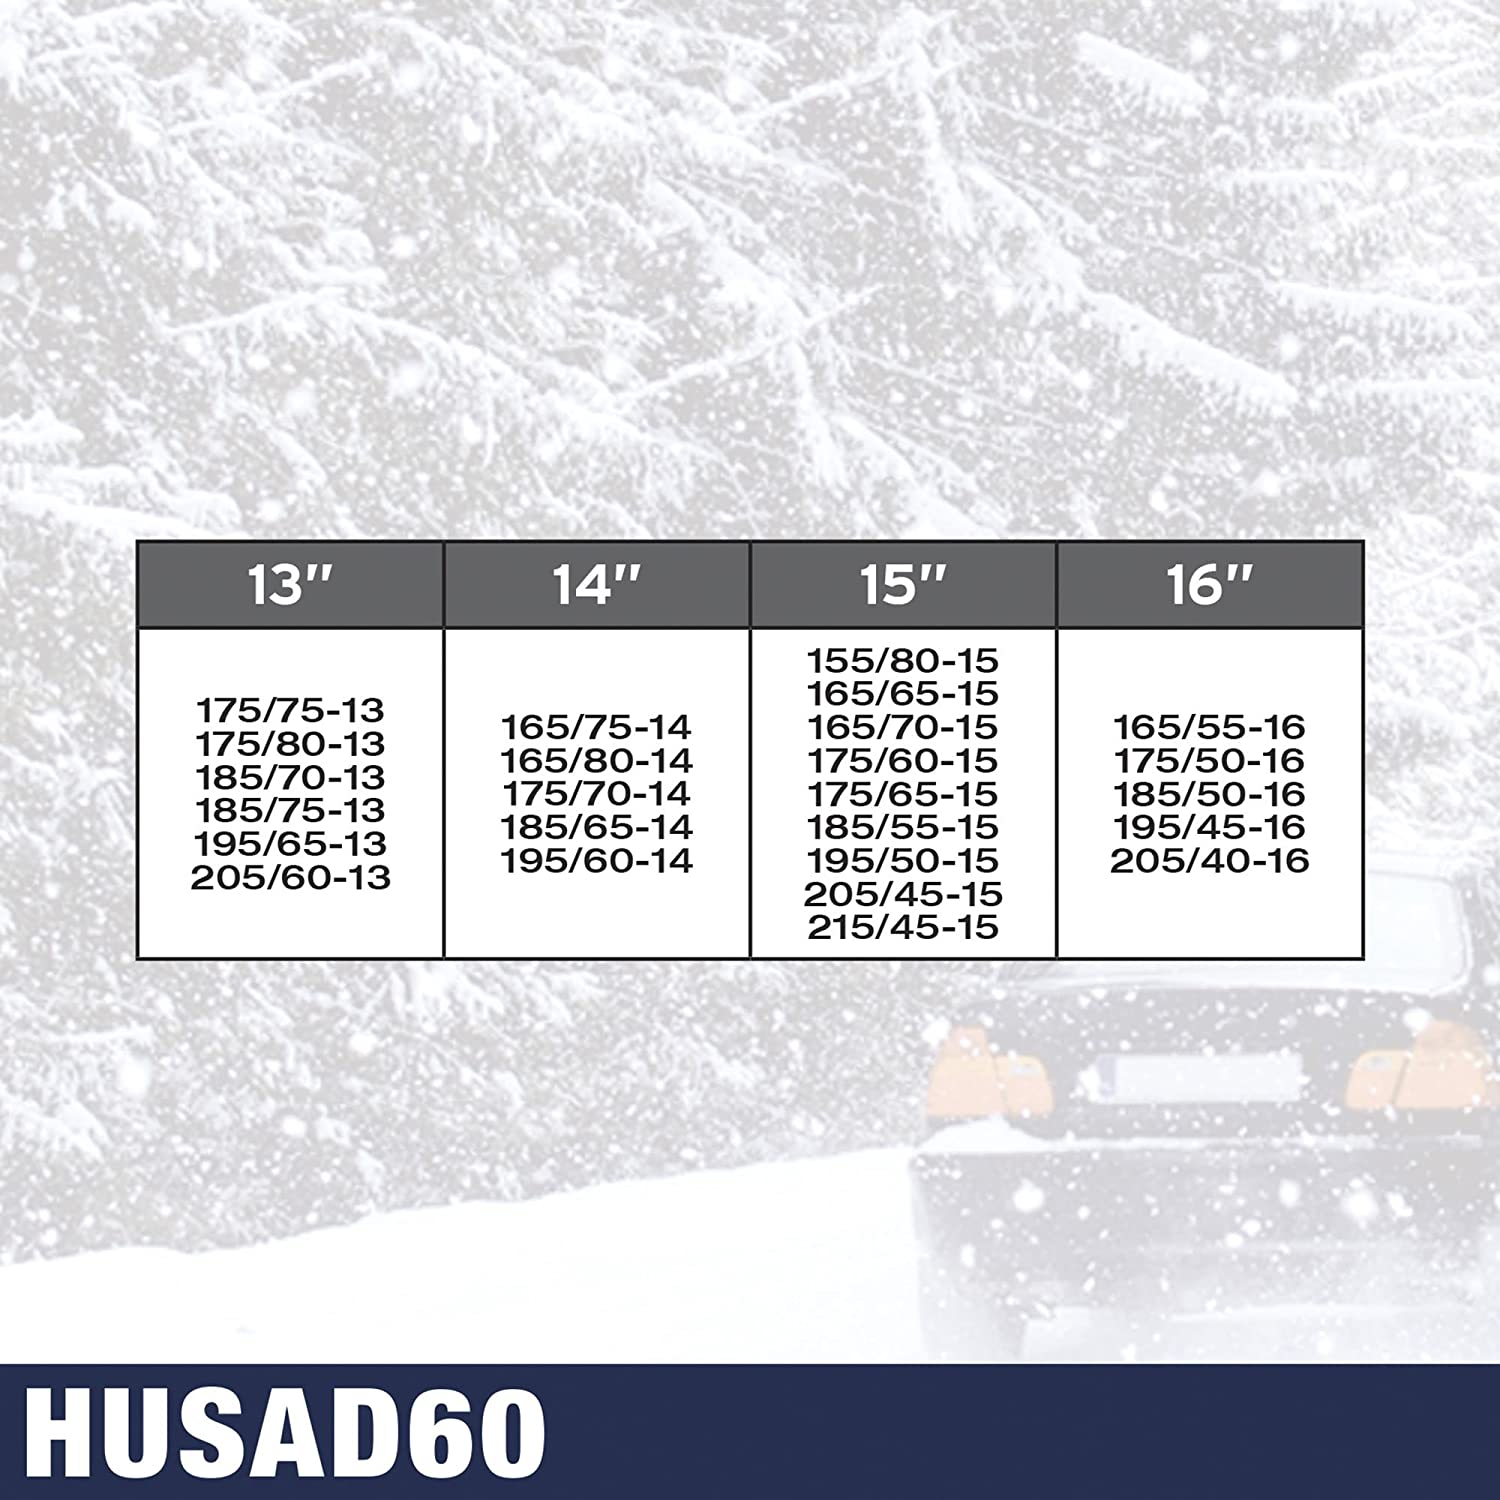 SUMEX Husad60 - Cadenas De Nieve Husky Advance 9 mm, O - Normal, Kn60: Amazon.es: Coche y moto